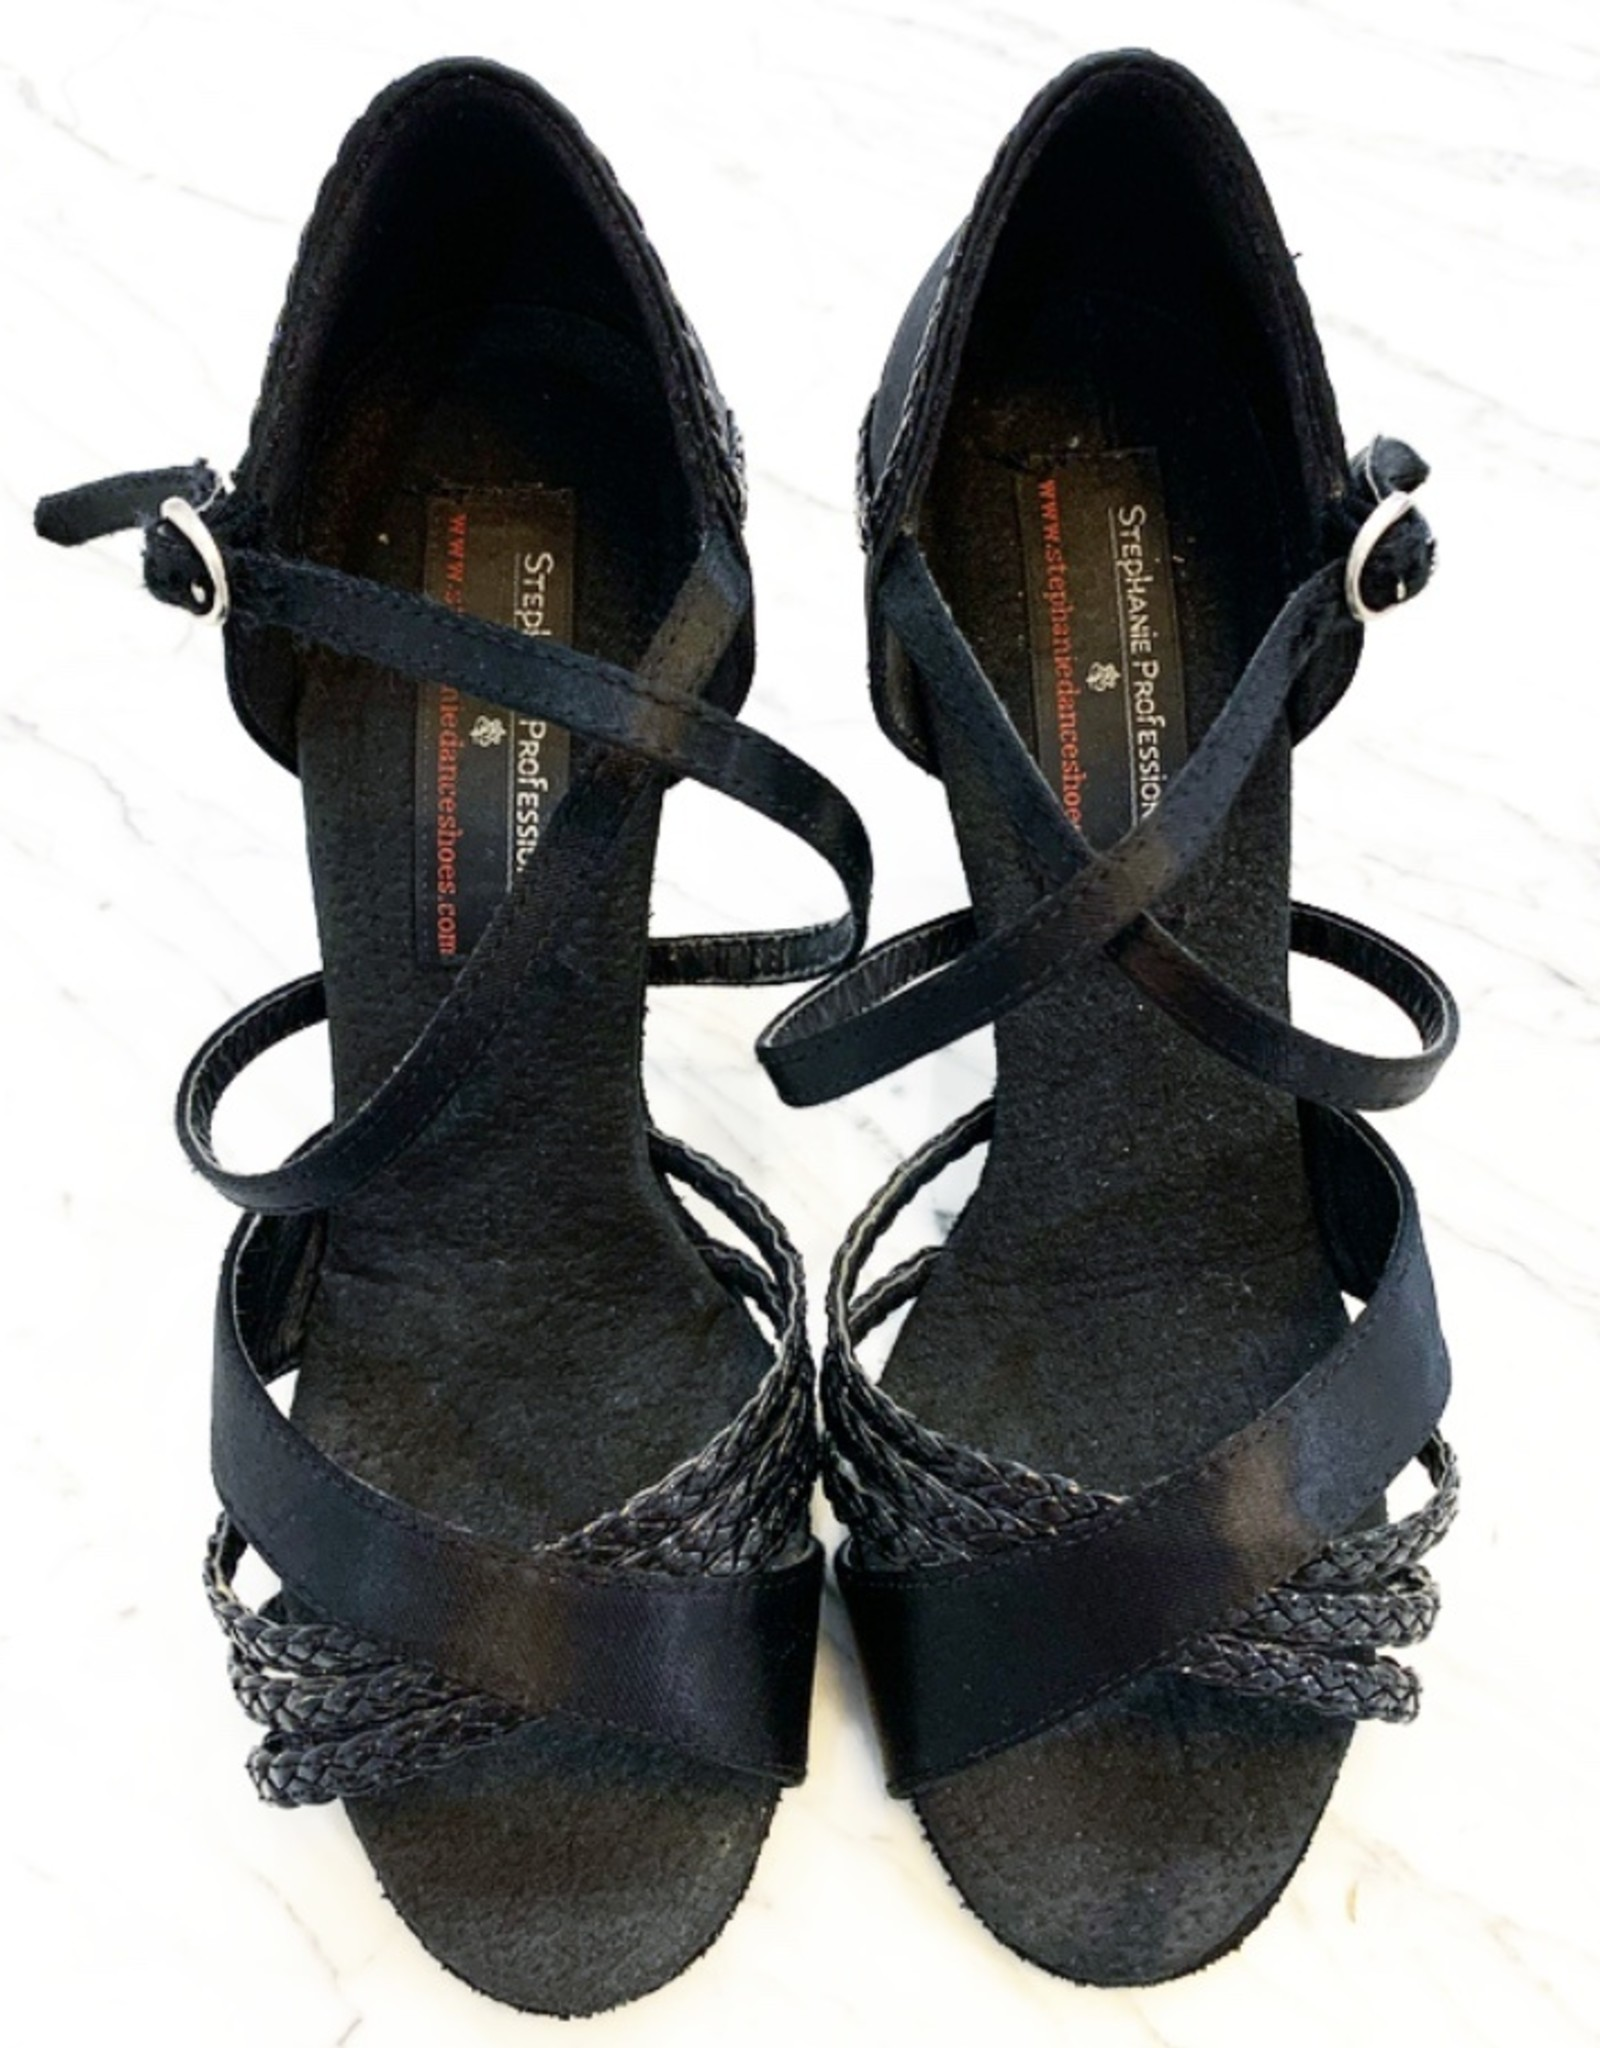 PROFESSIONAL SATIN BALLROOM SHOES (92006)